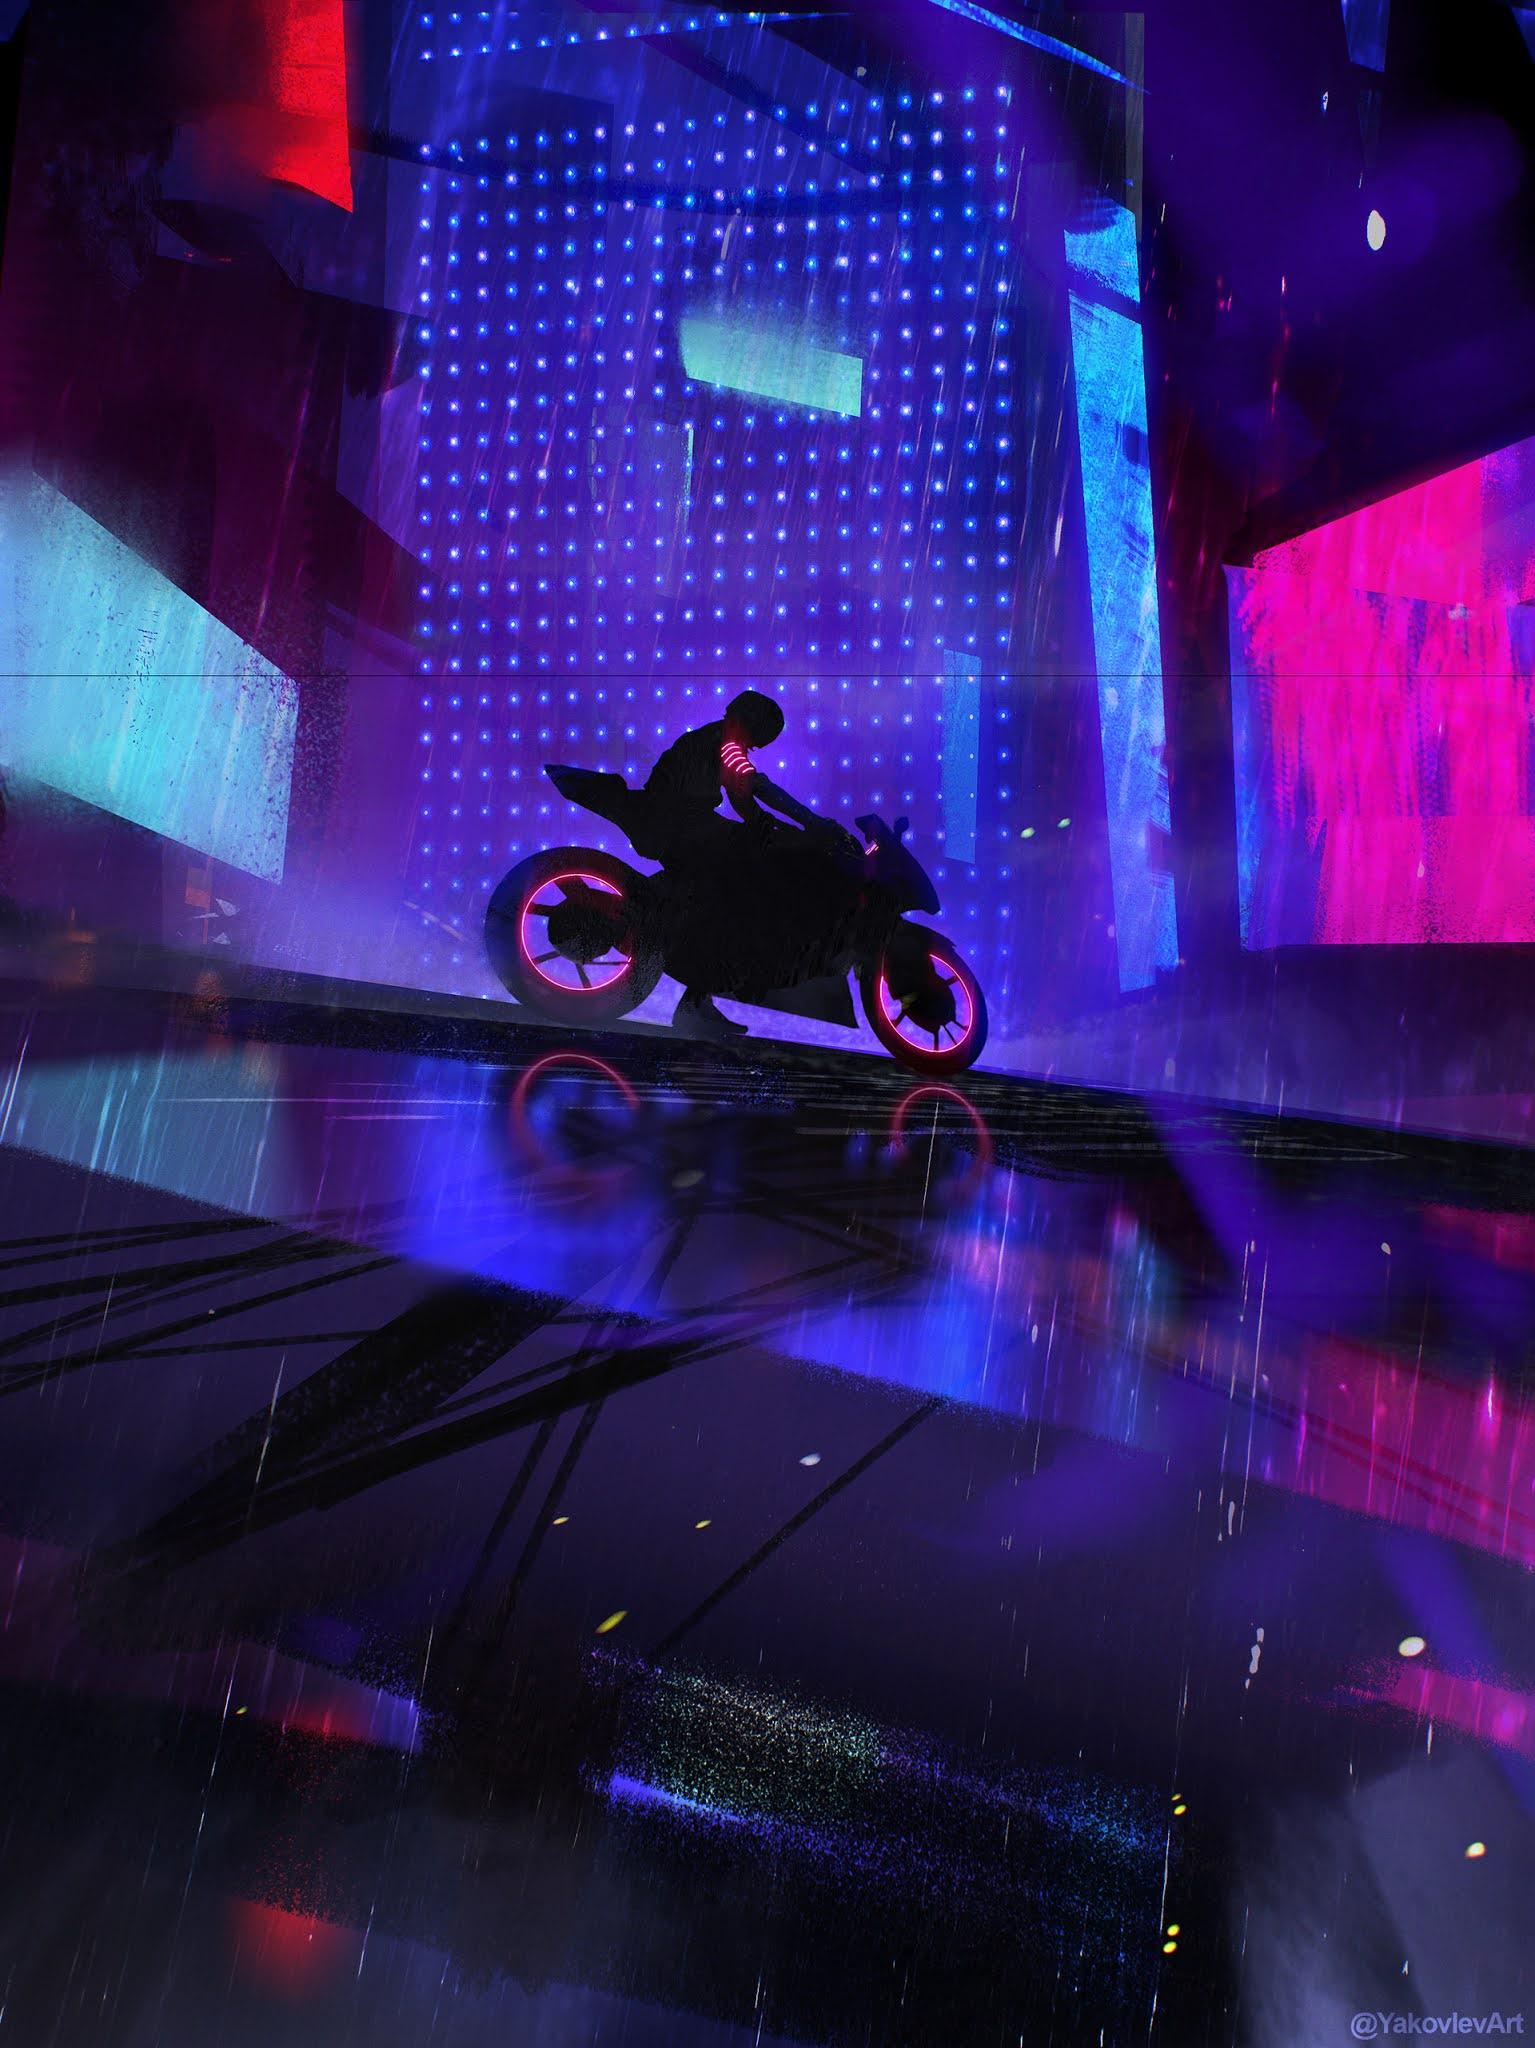 RIDER MOTORCYCLE CYBERPUNK GAME